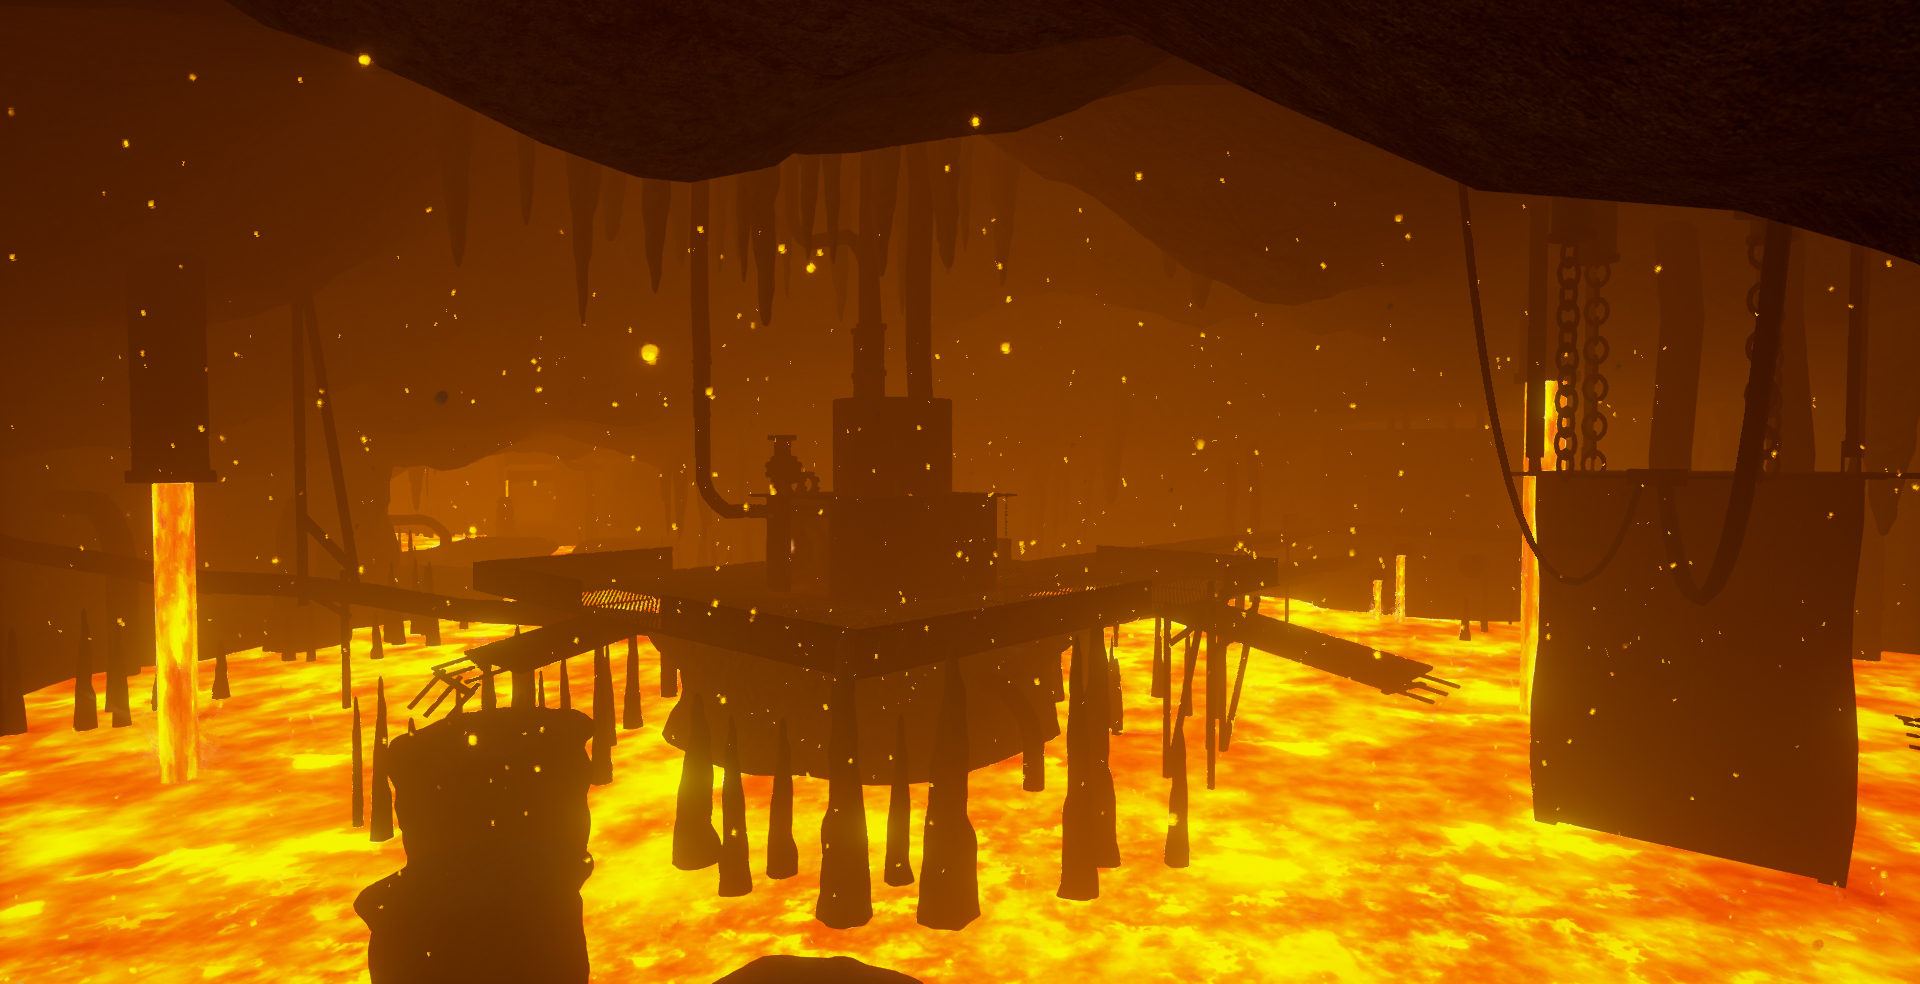 Veilia Screenshot 3